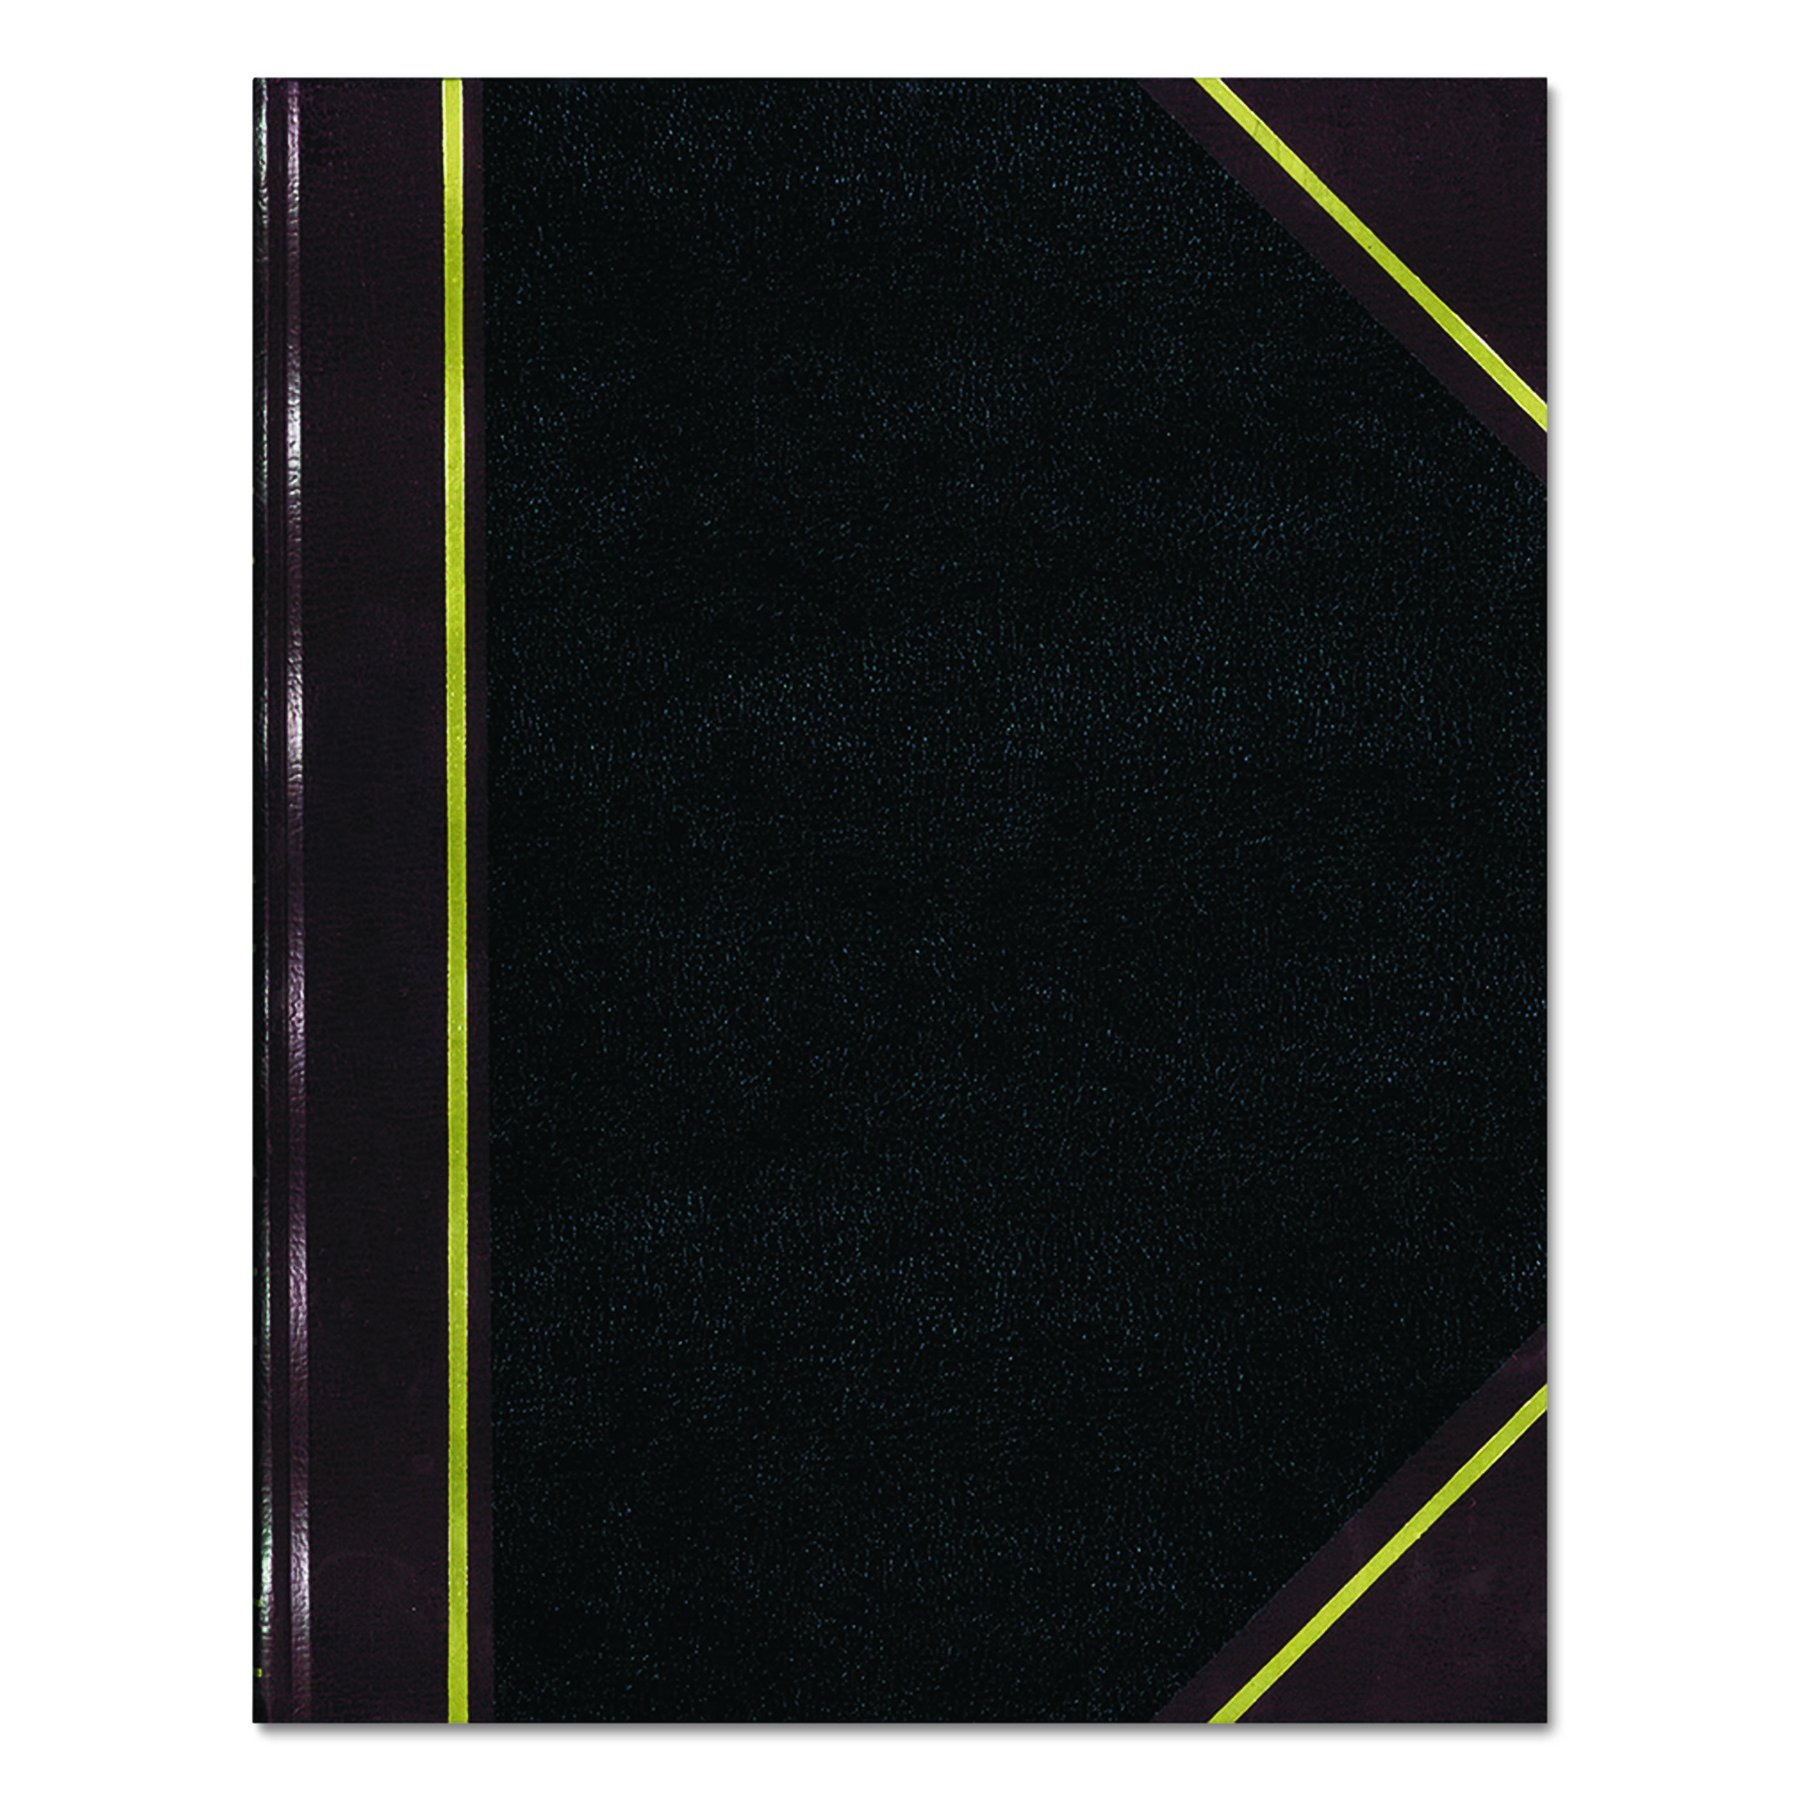 NATIONAL Texhide Series Record Book, Black, 10.375'' x 8.375'', 300 Pages (56231)